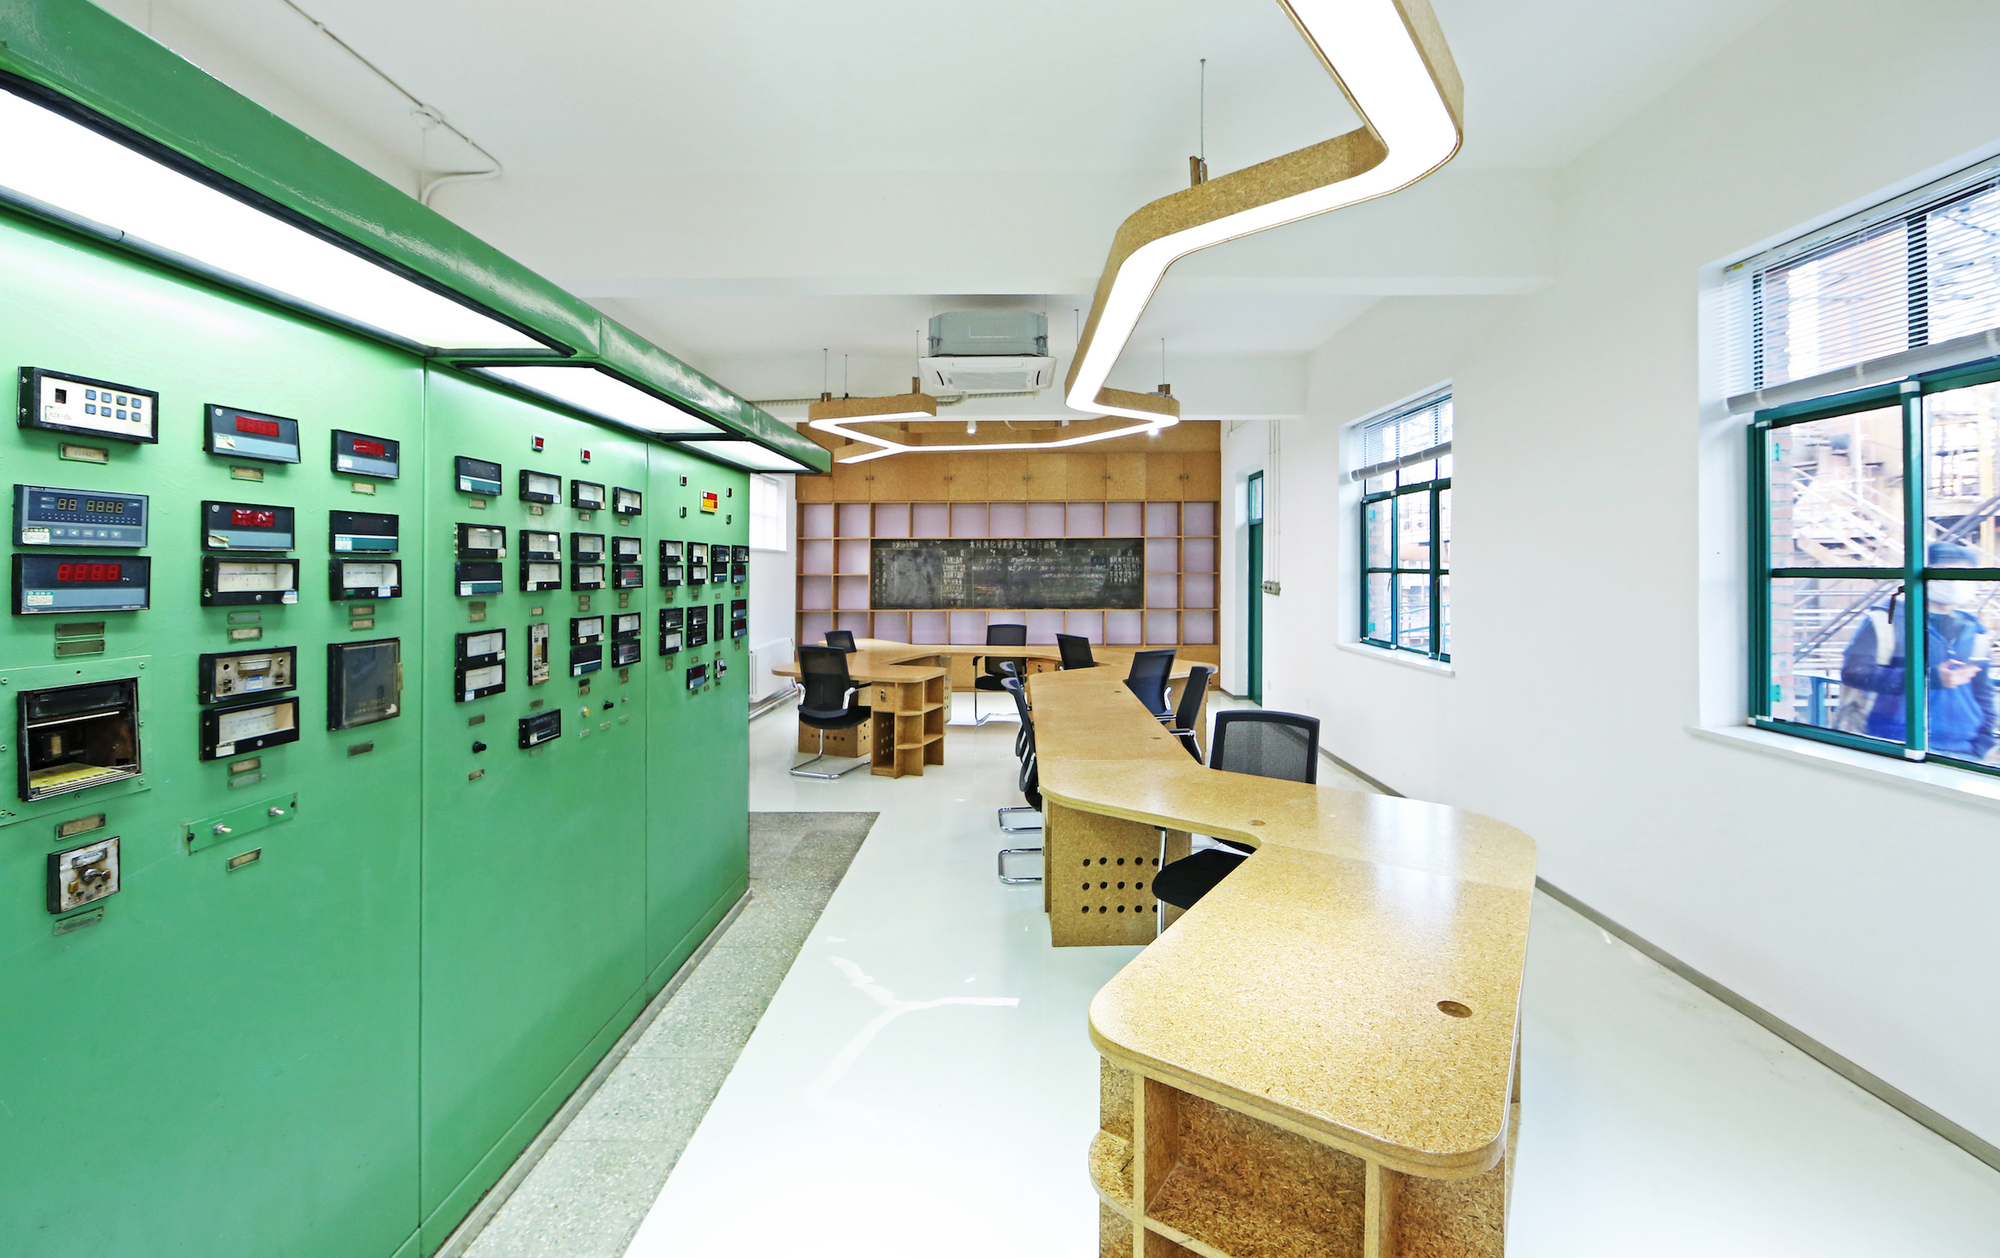 751 Creative Industrial Office Design Hypersity Office